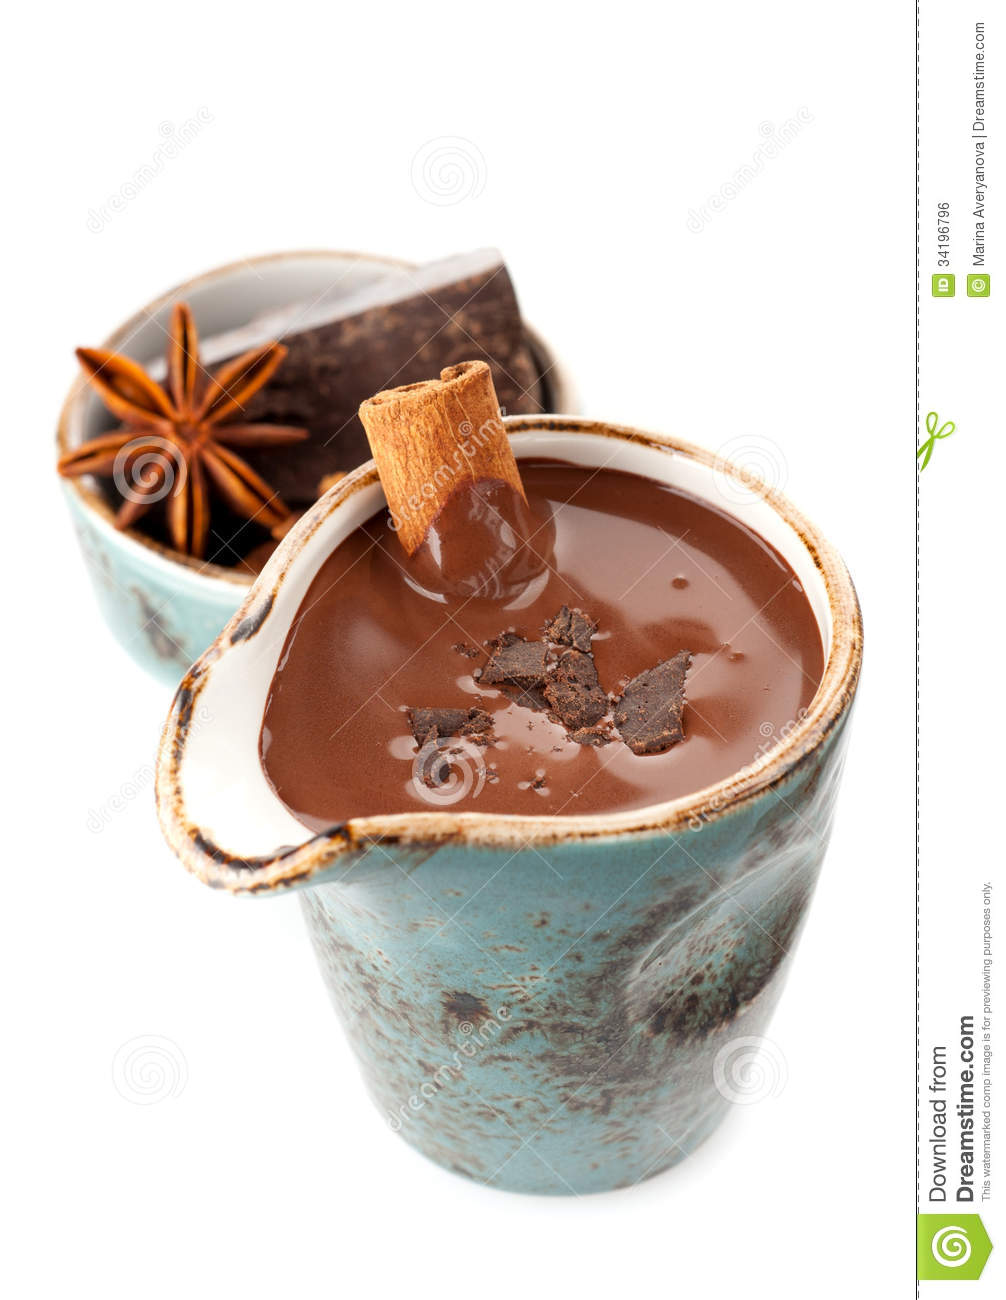 pies double anise hot chocolate double anise hot chocolate rich anise ...